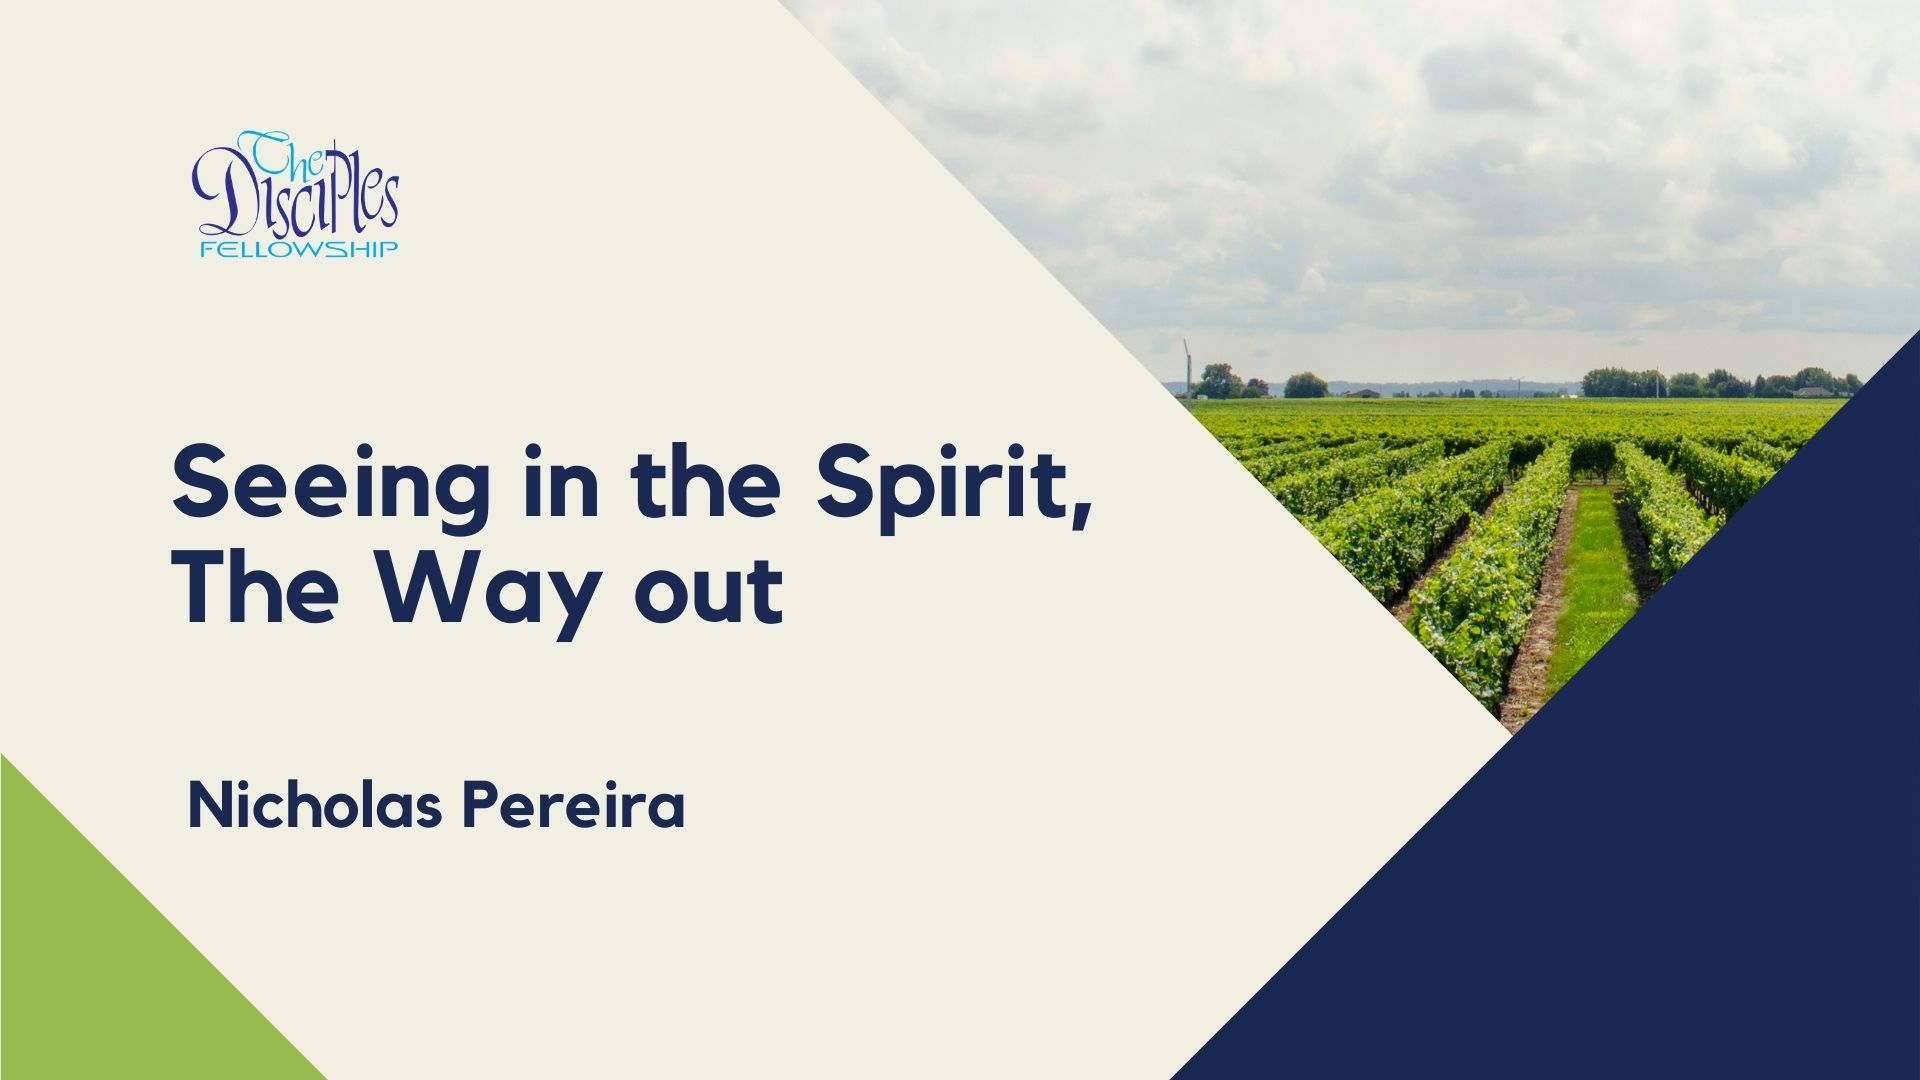 Seeing in the Spirit, The Way out <br/>Nicholas Pereira